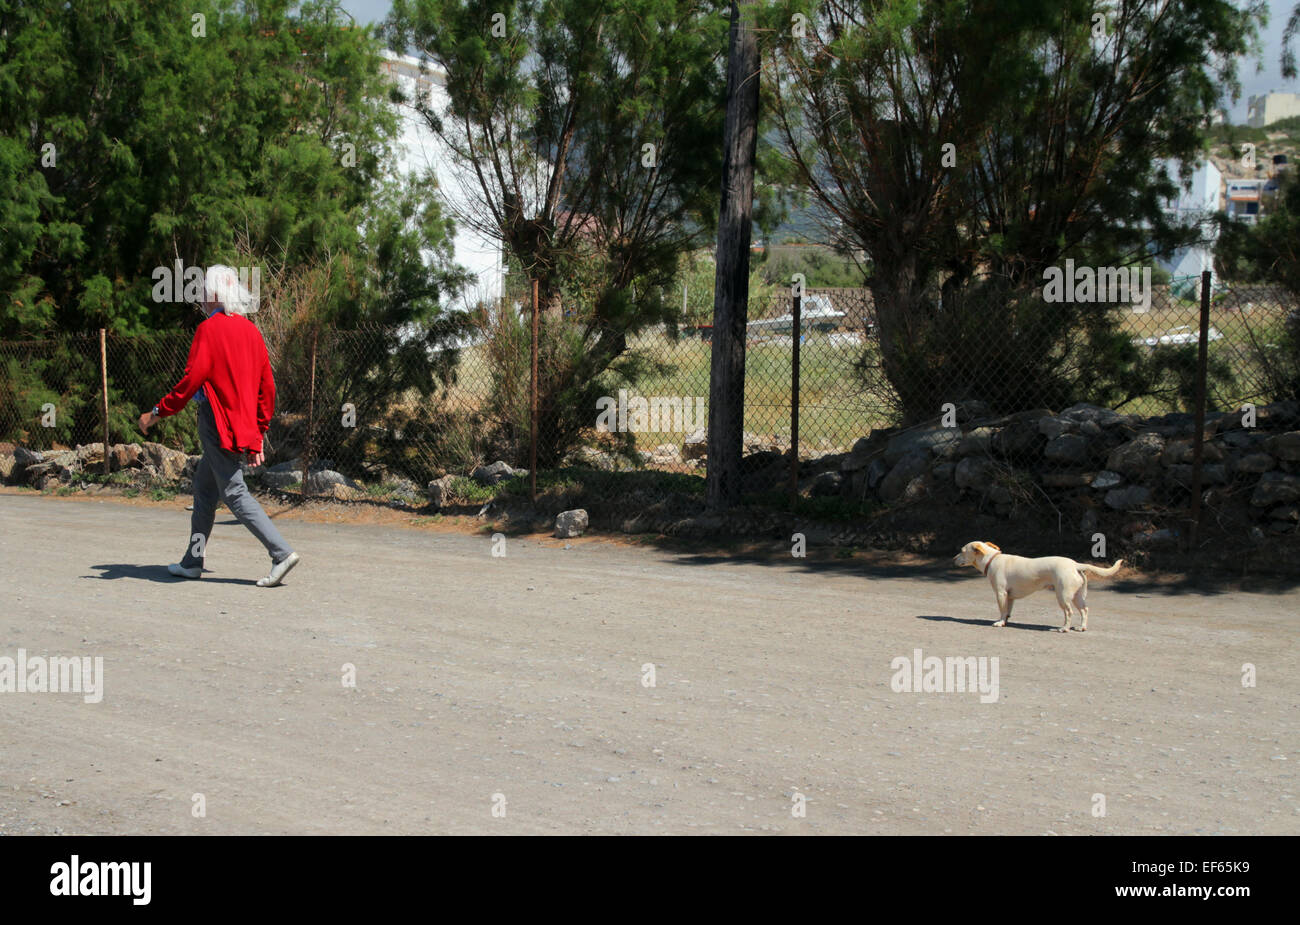 CREAM COLOURED DOG WATCHES MAN WALKING IN RED CARDIGAN MOCHLOS CRETE GREECE 06 May 2014 - Stock Image